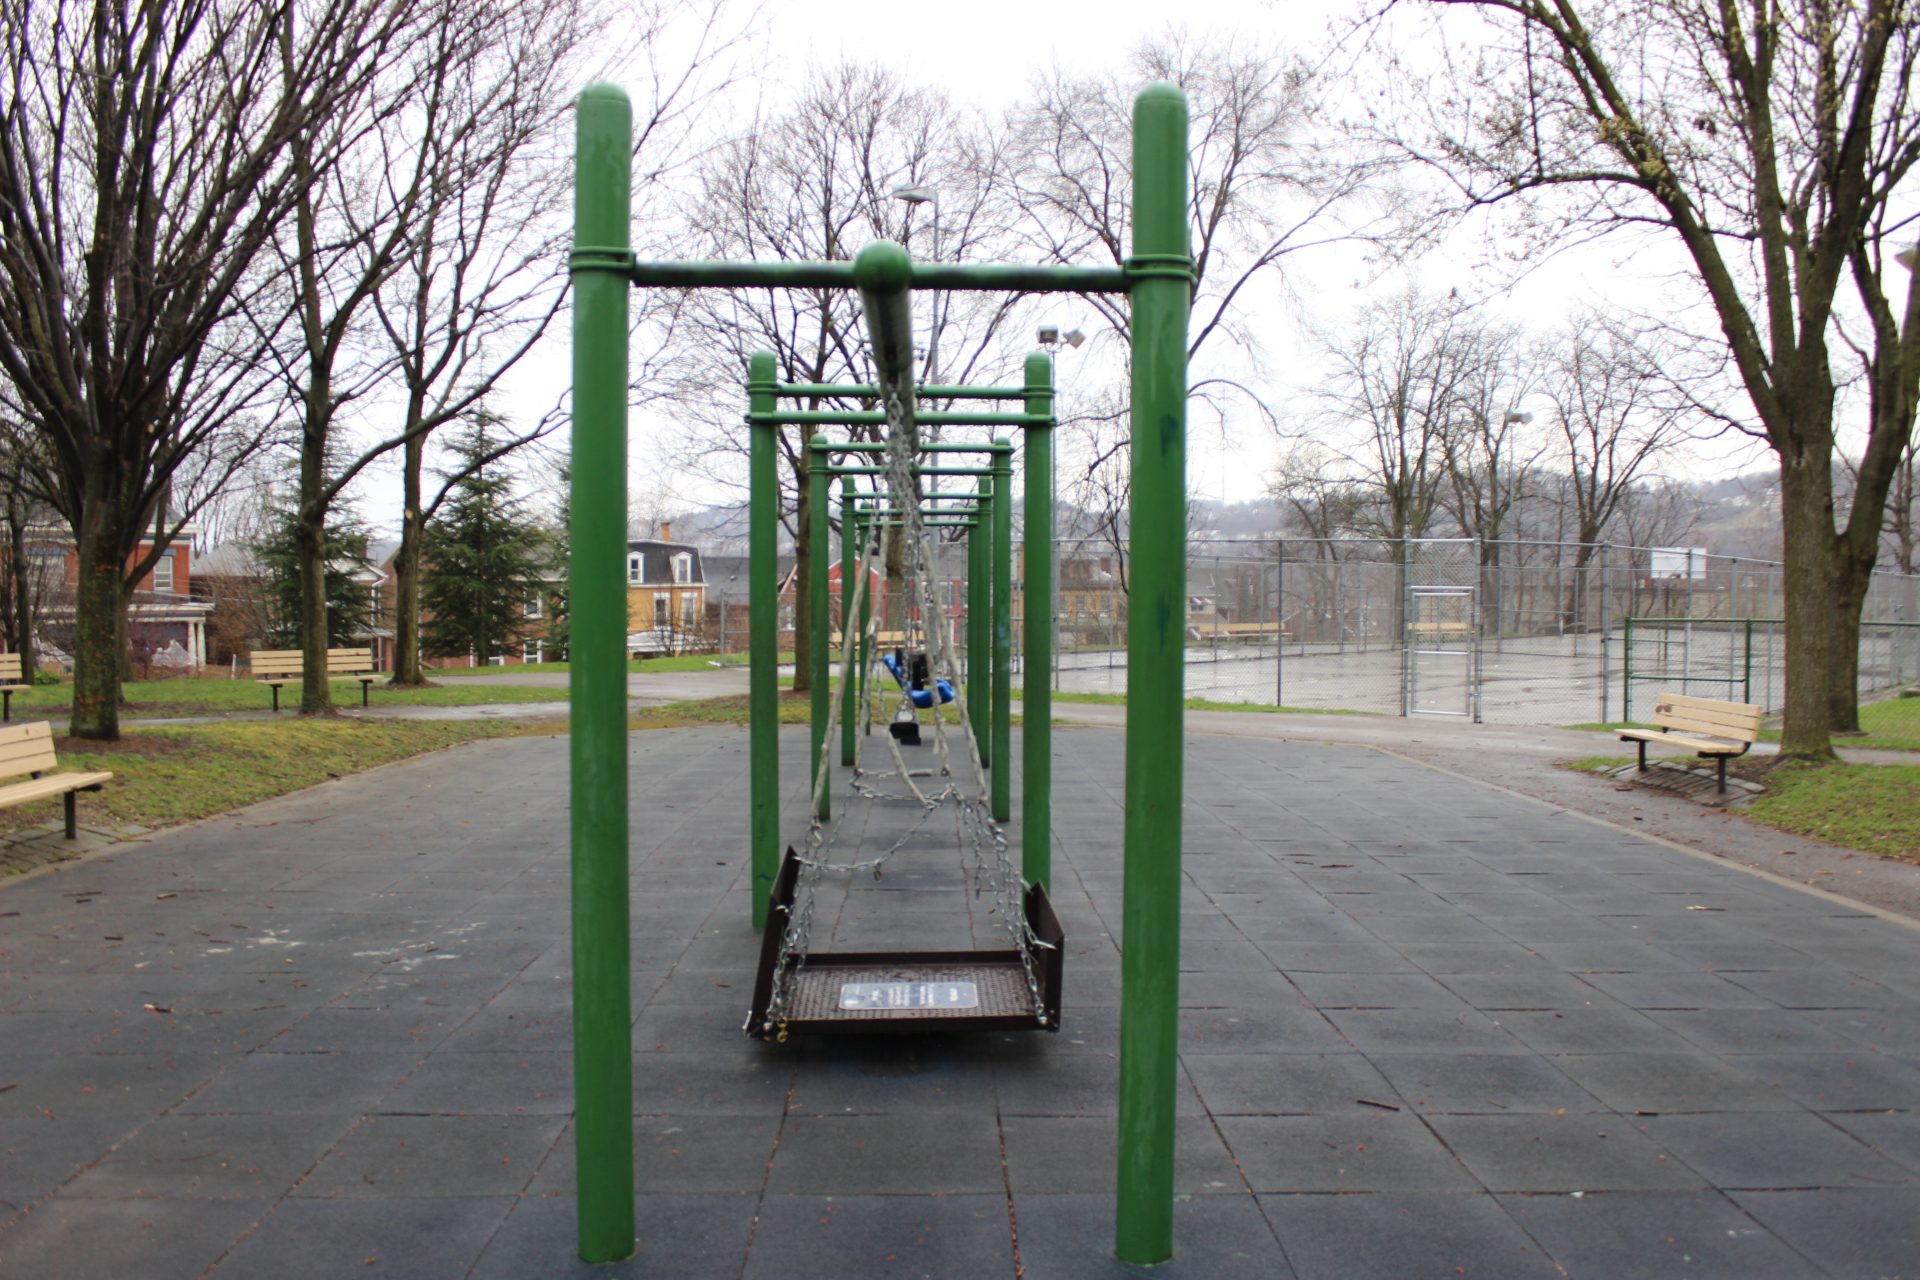 Swings sit empty in Pittsburgh's Arsenal Park on Monday, March 23, 2020.